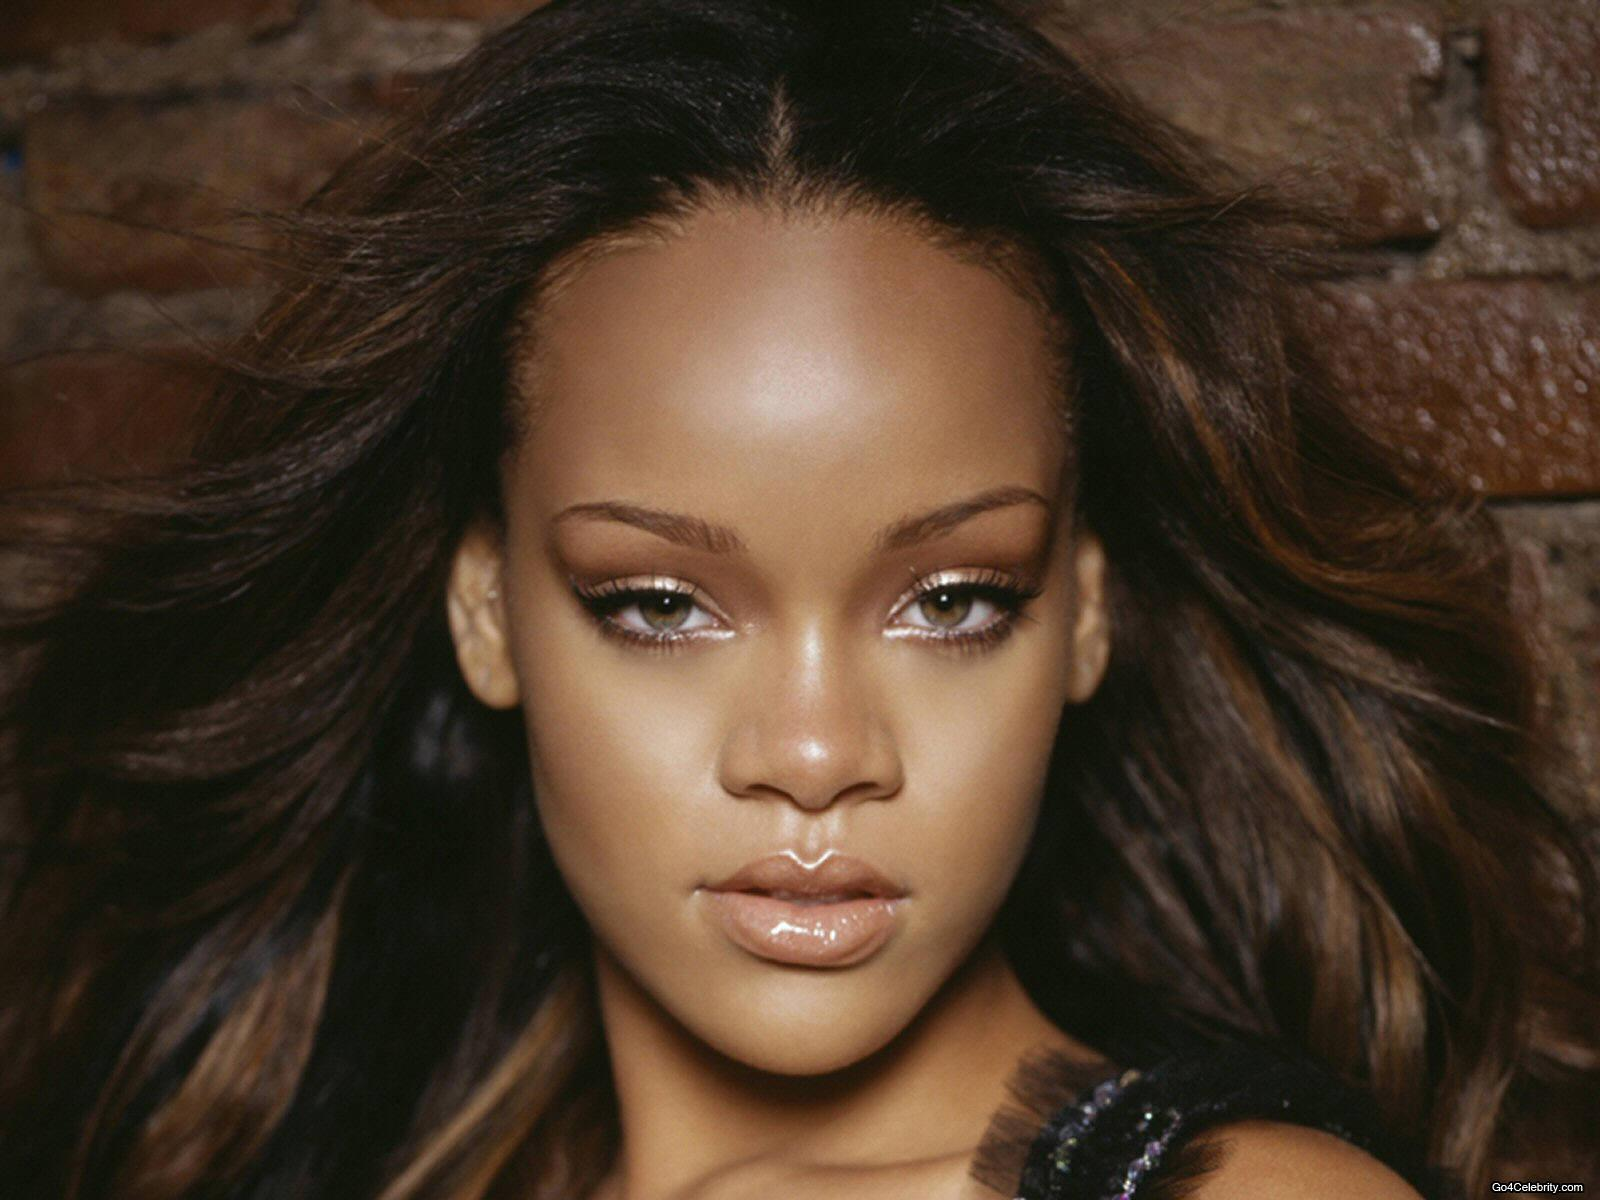 http://images2.fanpop.com/images/photos/6800000/Rihanna-rihanna-6848036-1600-1200.jpg